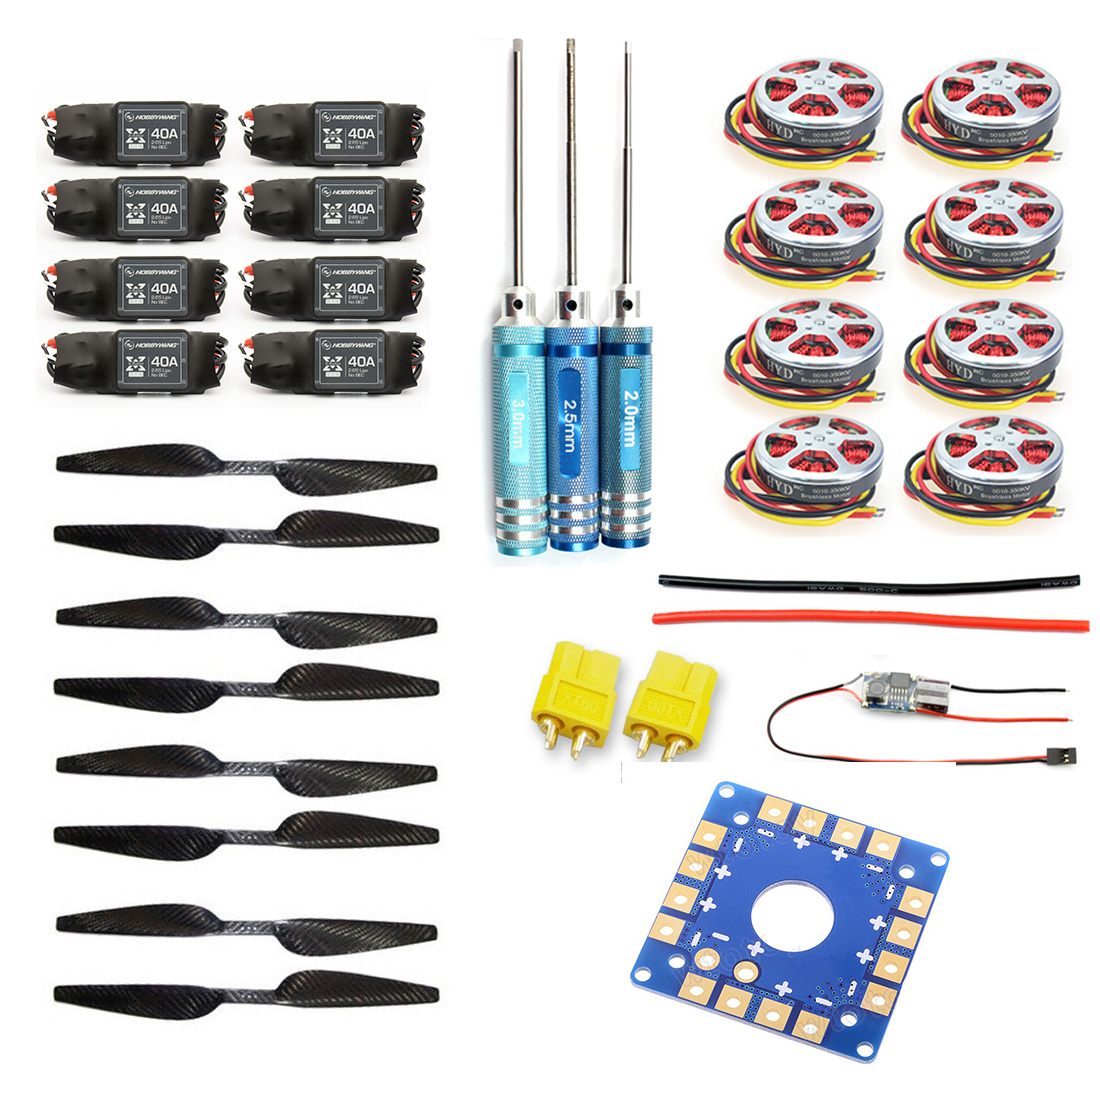 JMT Foldable Rack RC Helicopter Kit KK Connection Board+350KV Brushless Disk Motor+16x5.0 Propeller+40A ESC F05423-F f02015 f 6 axis foldable rack rc quadcopter kit with kk v2 3 circuit board 1000kv brushless motor 10x4 7 propeller 30a esc